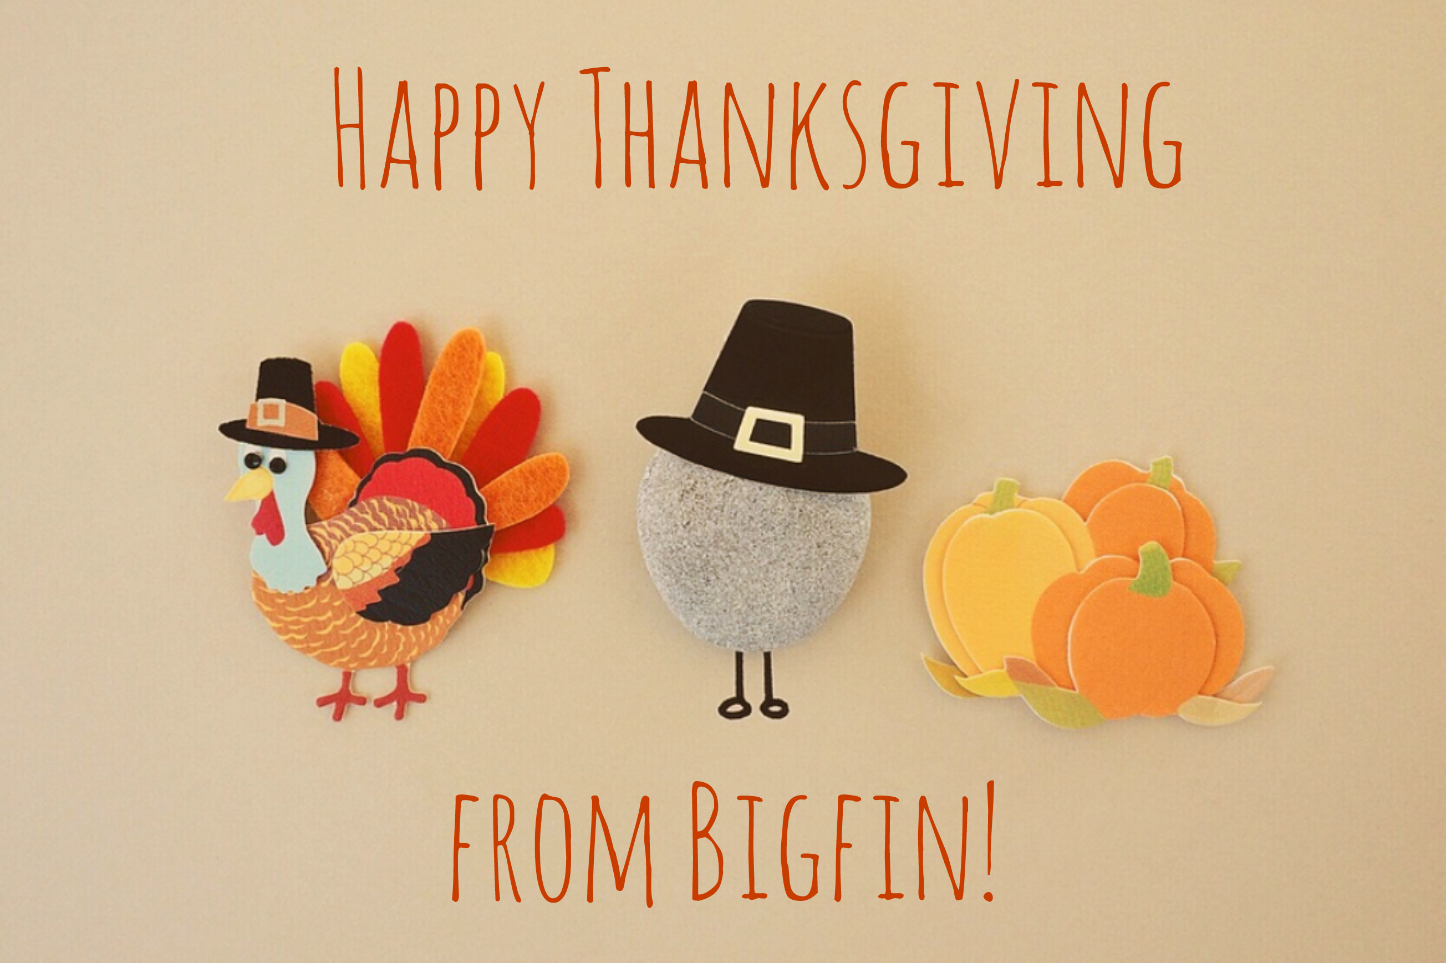 Happy Thanksgiving From Everyone Here At Bigfin We Hope